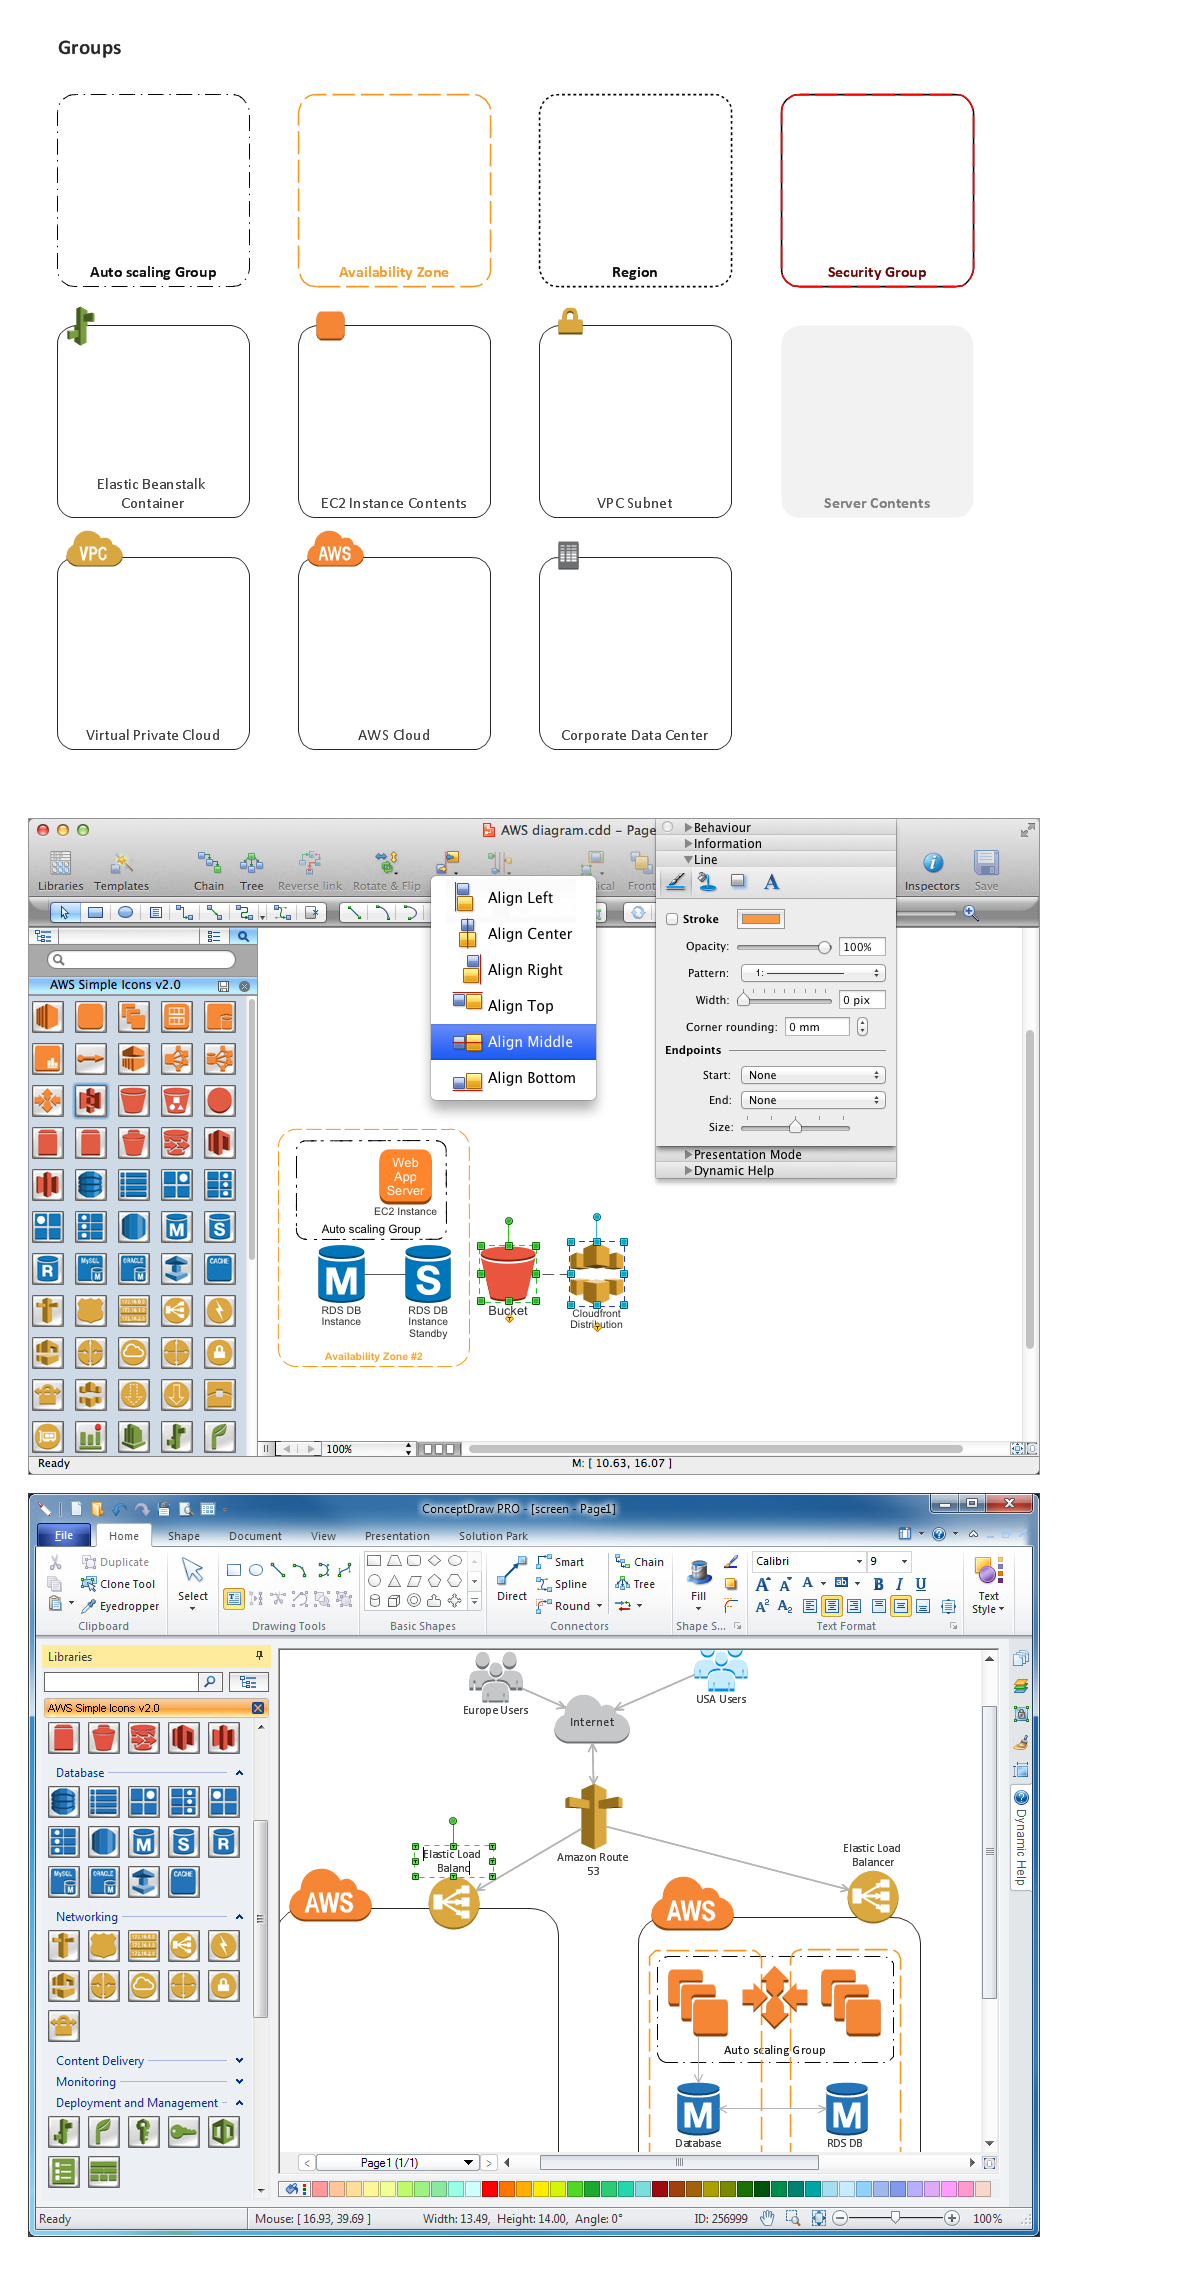 Amazon-Web-Services-AWS-Design-Elements-icons-Groups conceptdraw solution park web tool